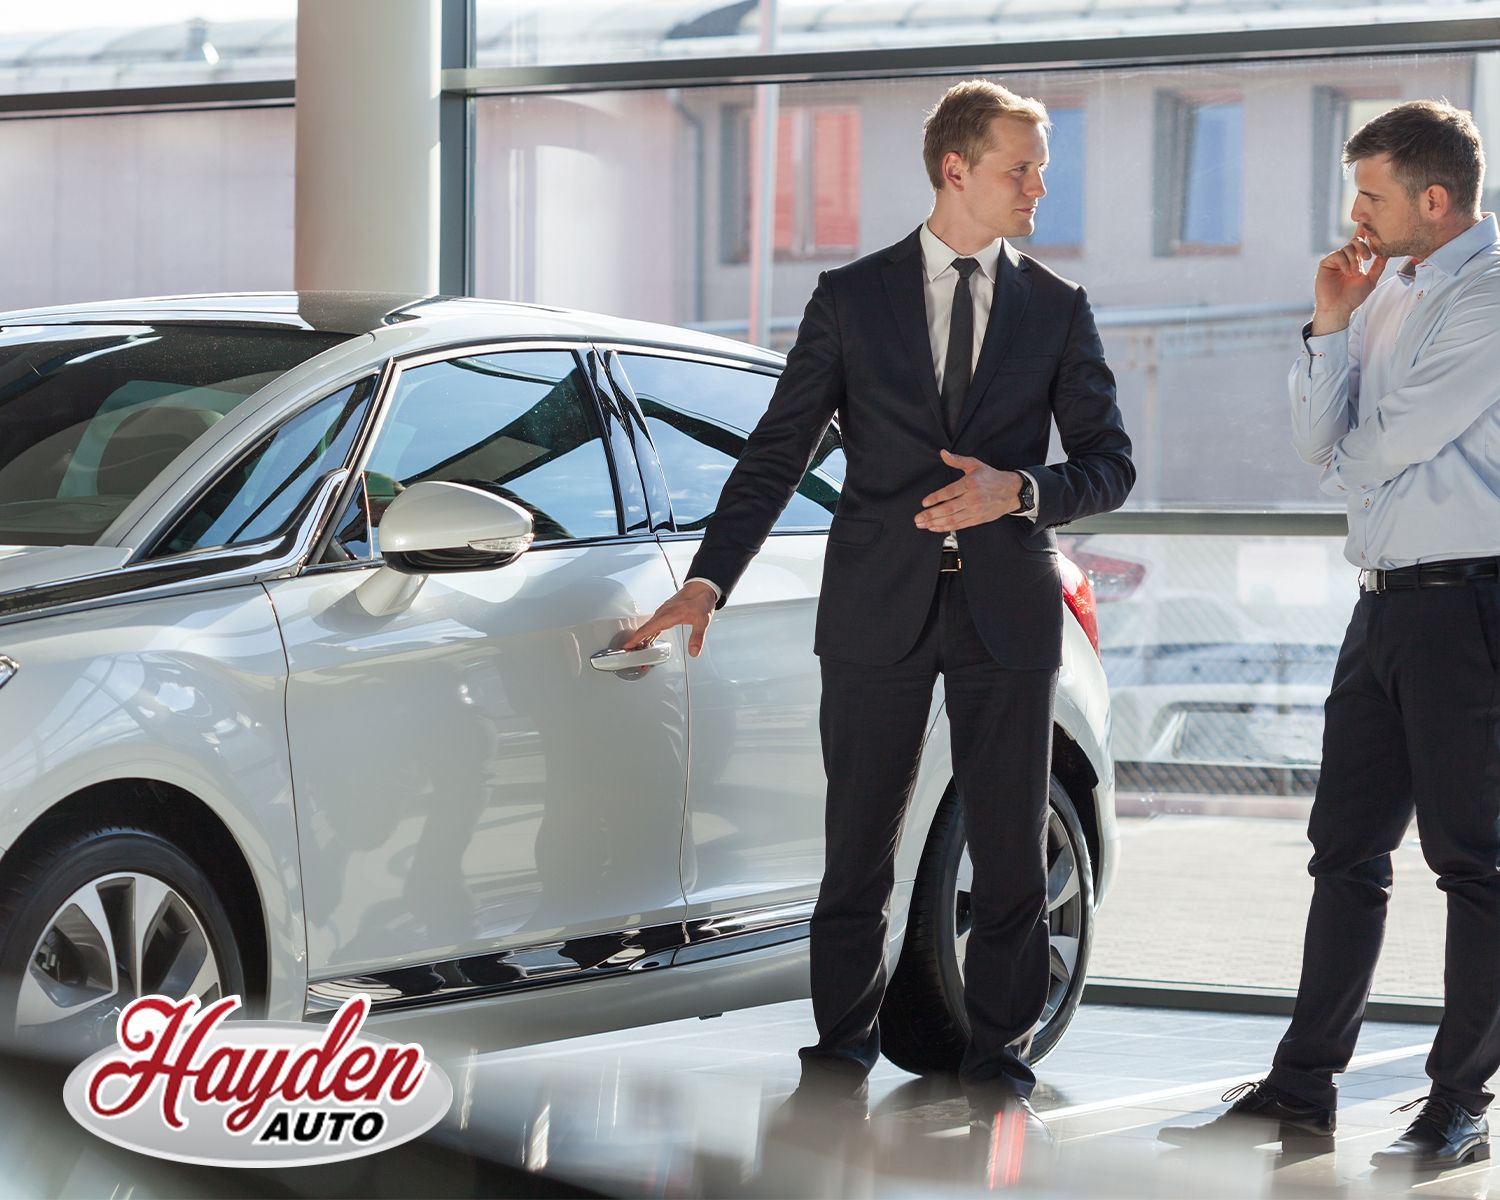 Hayden Auto is a used car dealership in Halifax. Choose a